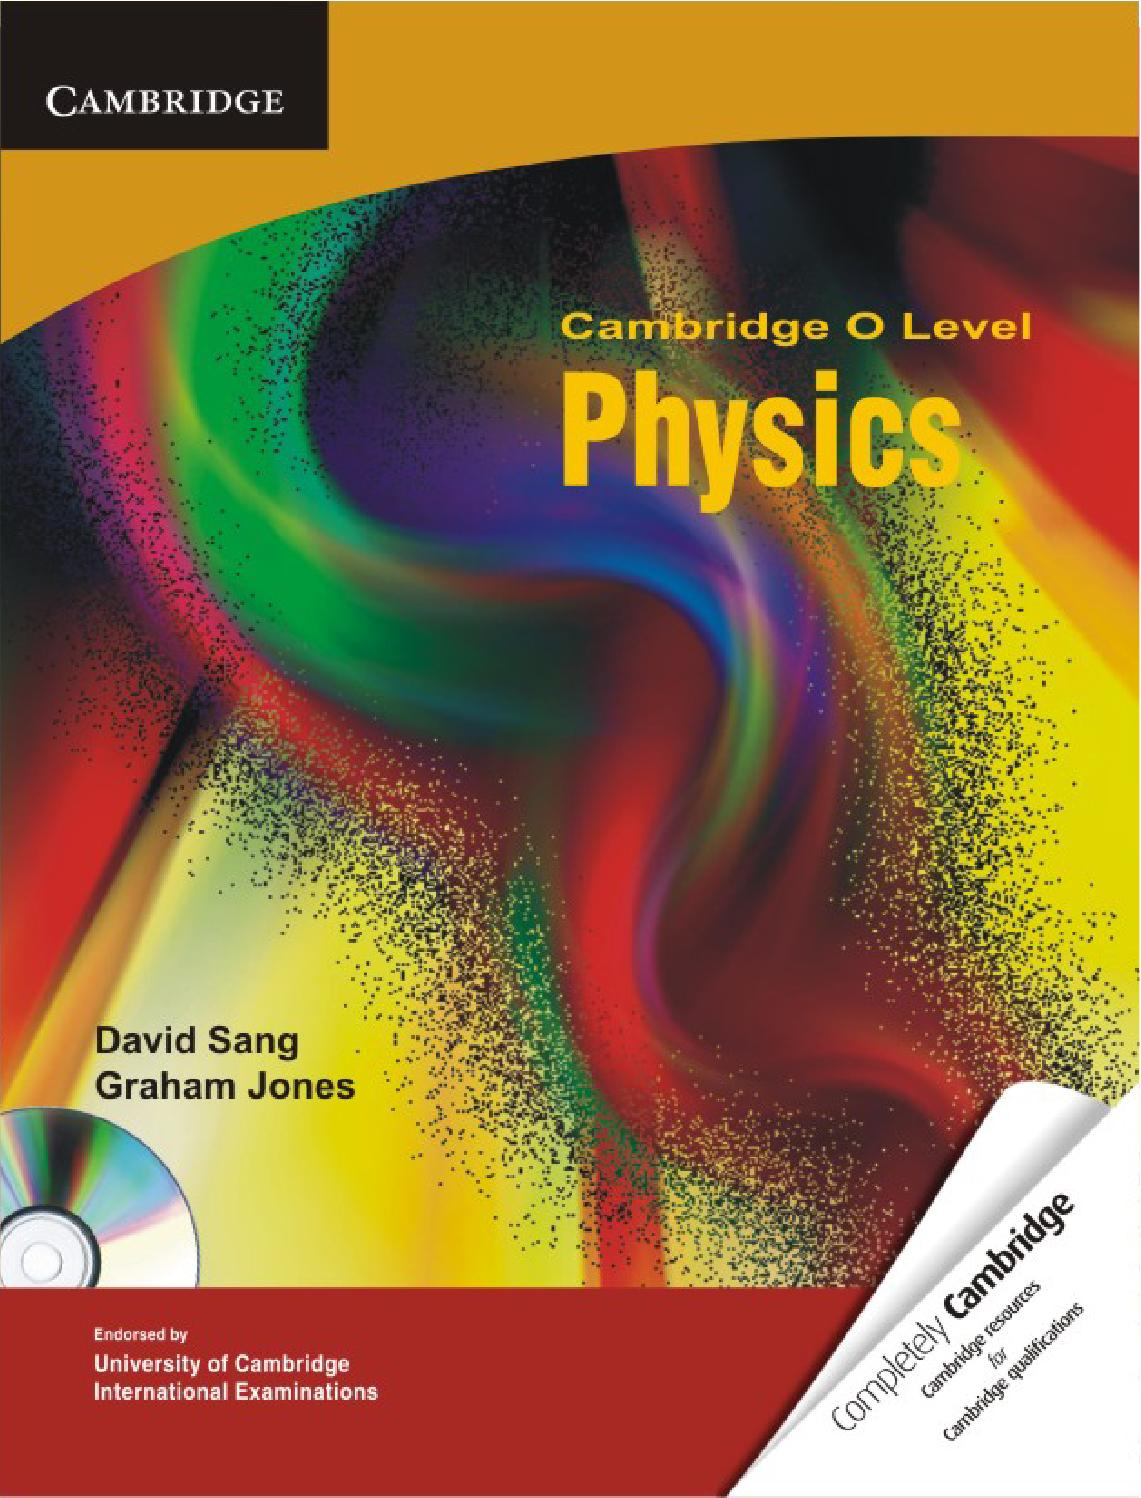 A Level Physics Textbook Pdf